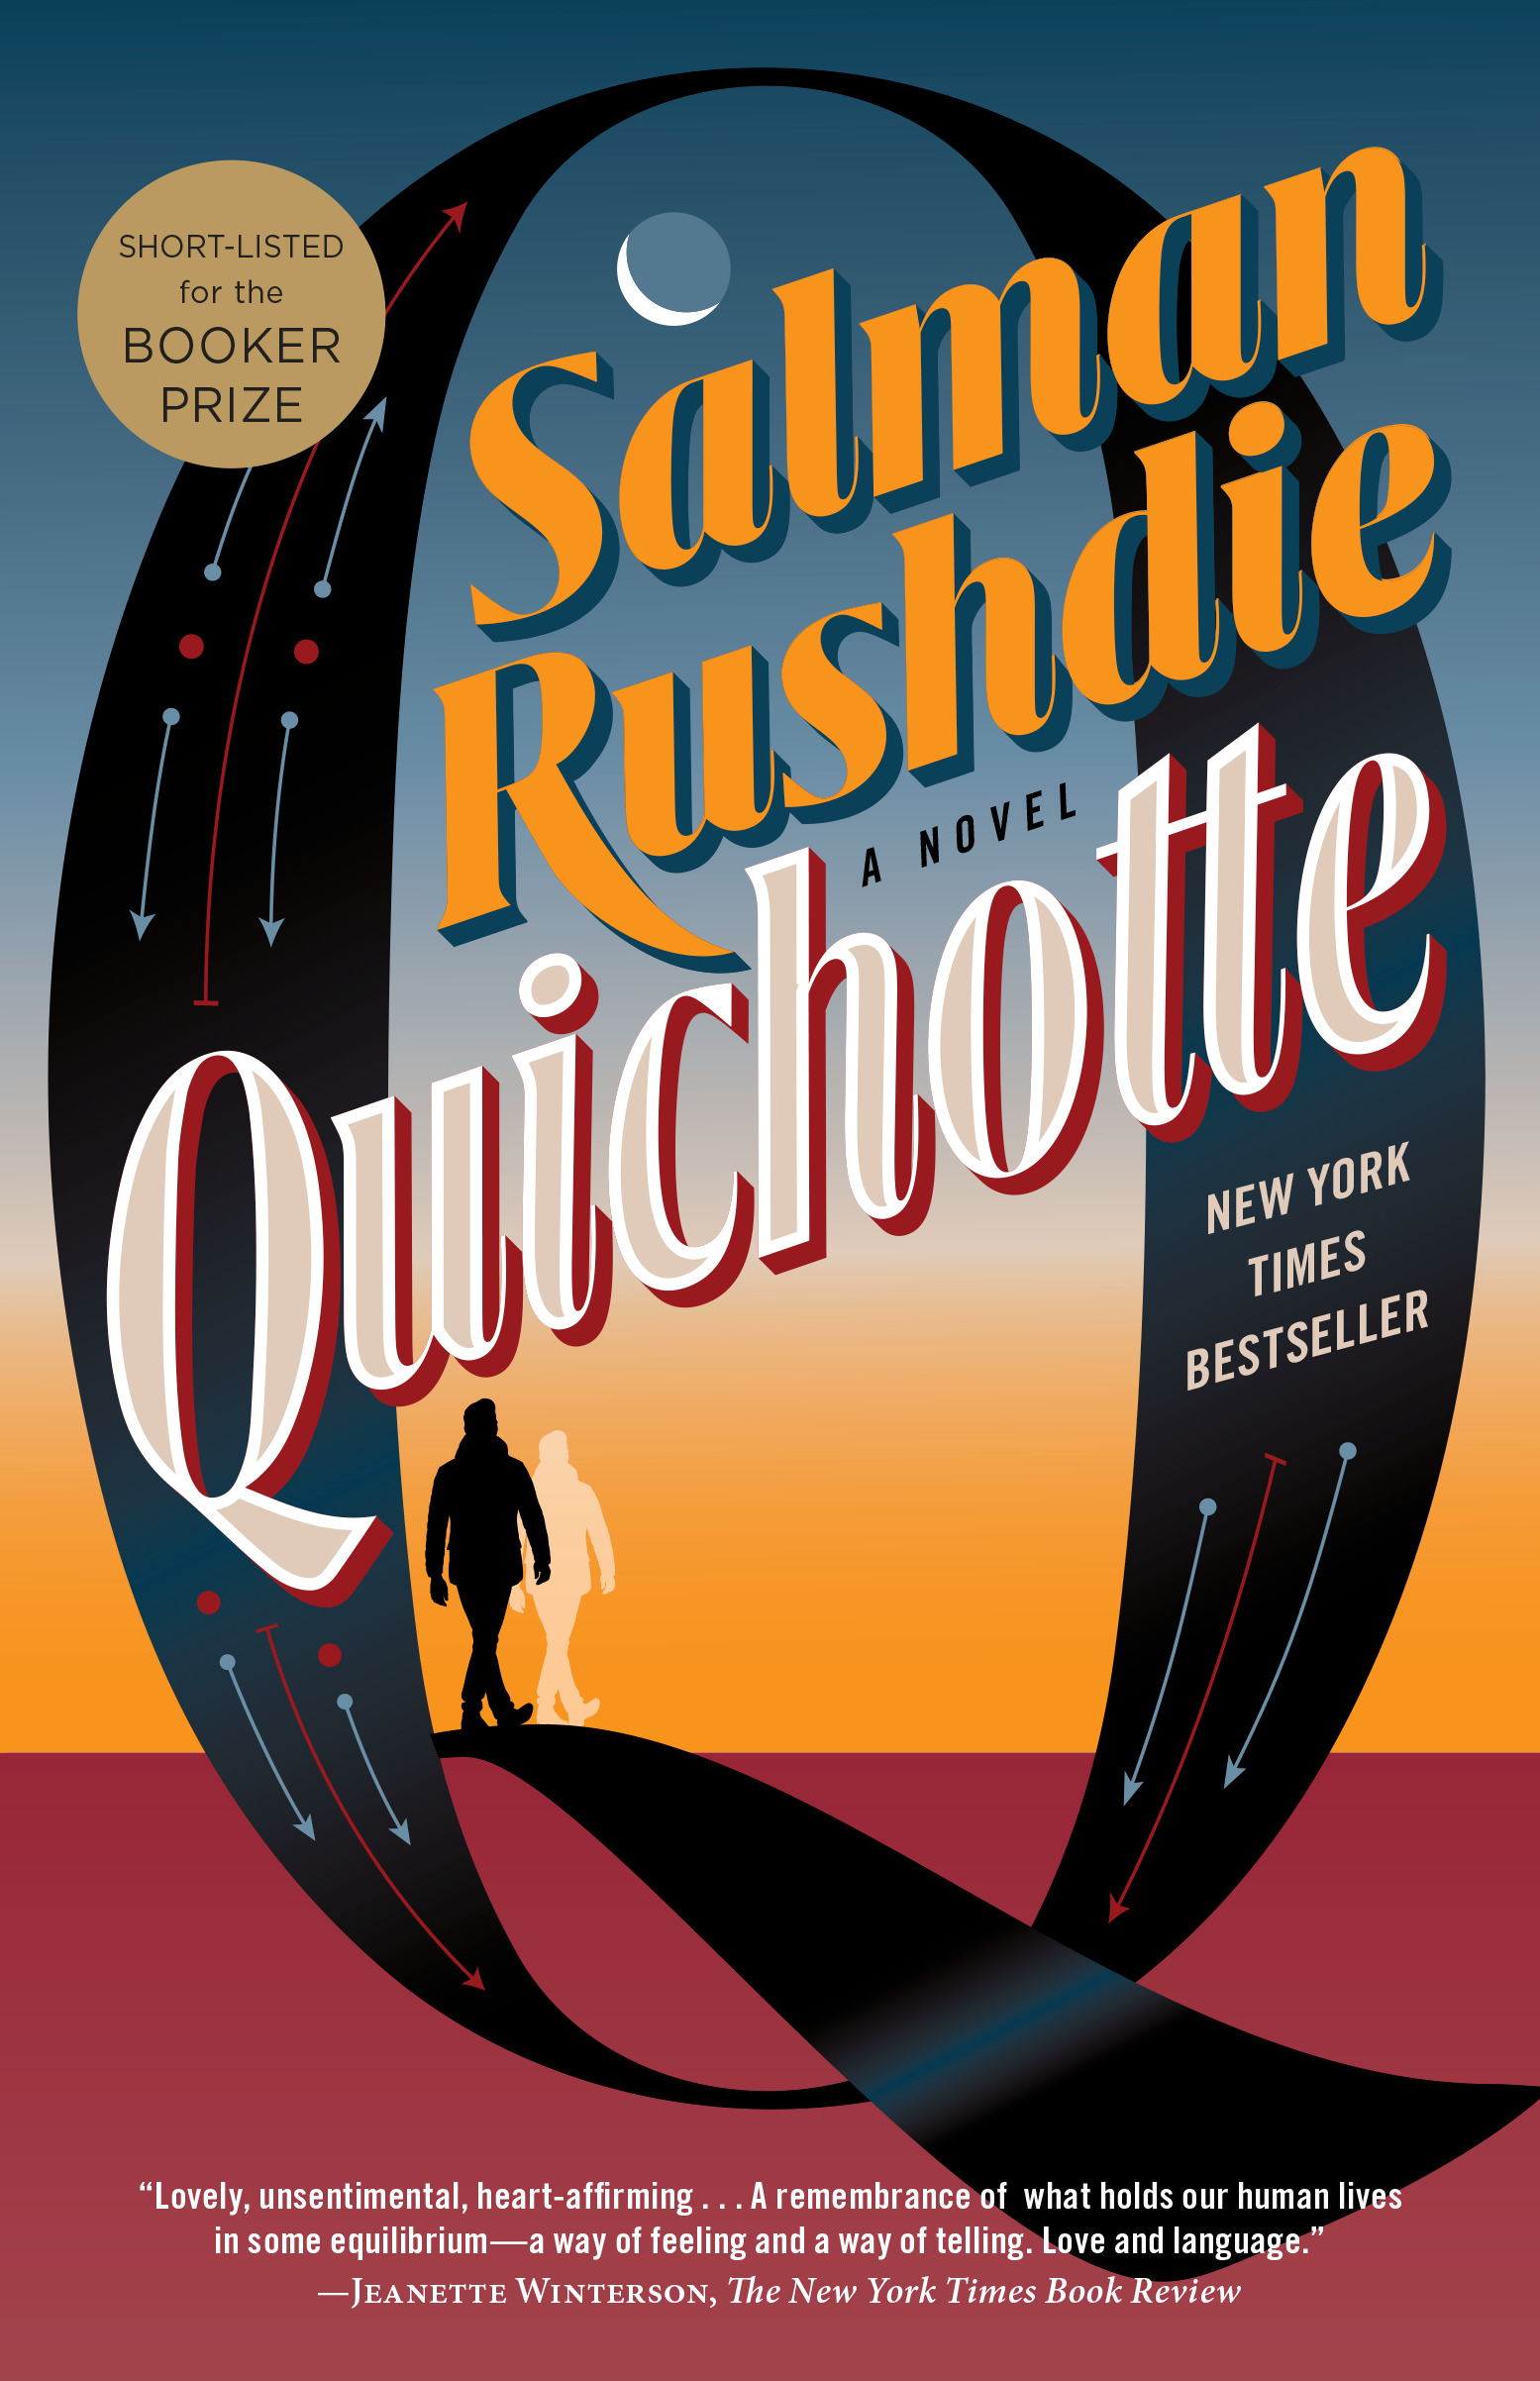 "Quichotte - Salman Rushdie - <span class=""date-display-single"">06/17/2020 - 7:00pm</span>"